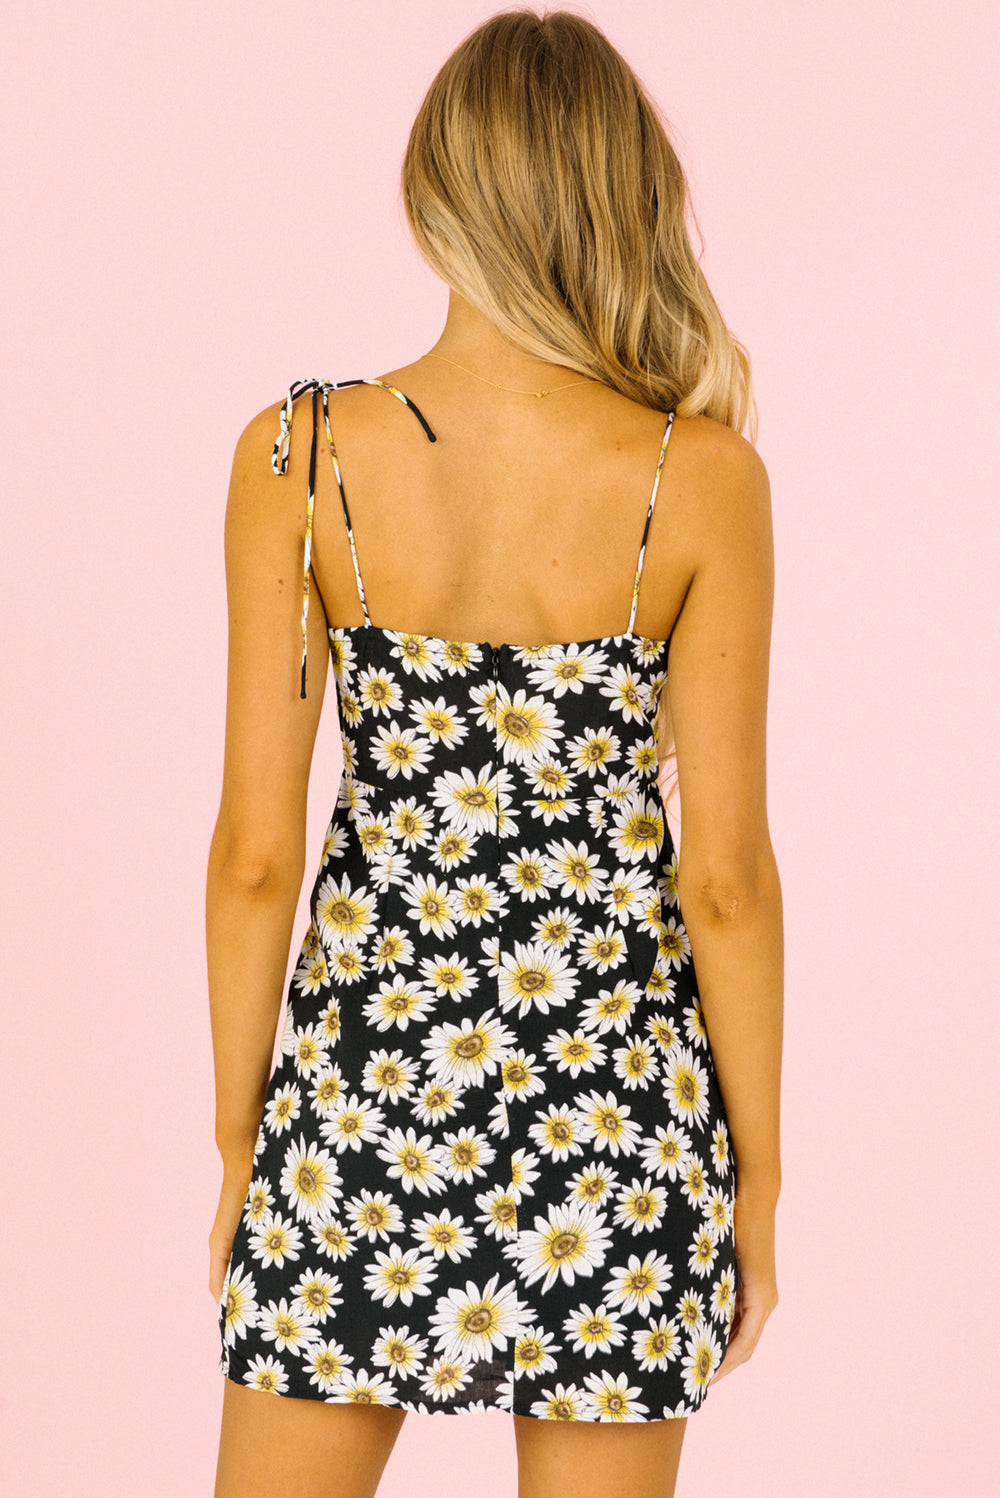 black floral mini dress, black mini dress, summer mini dress